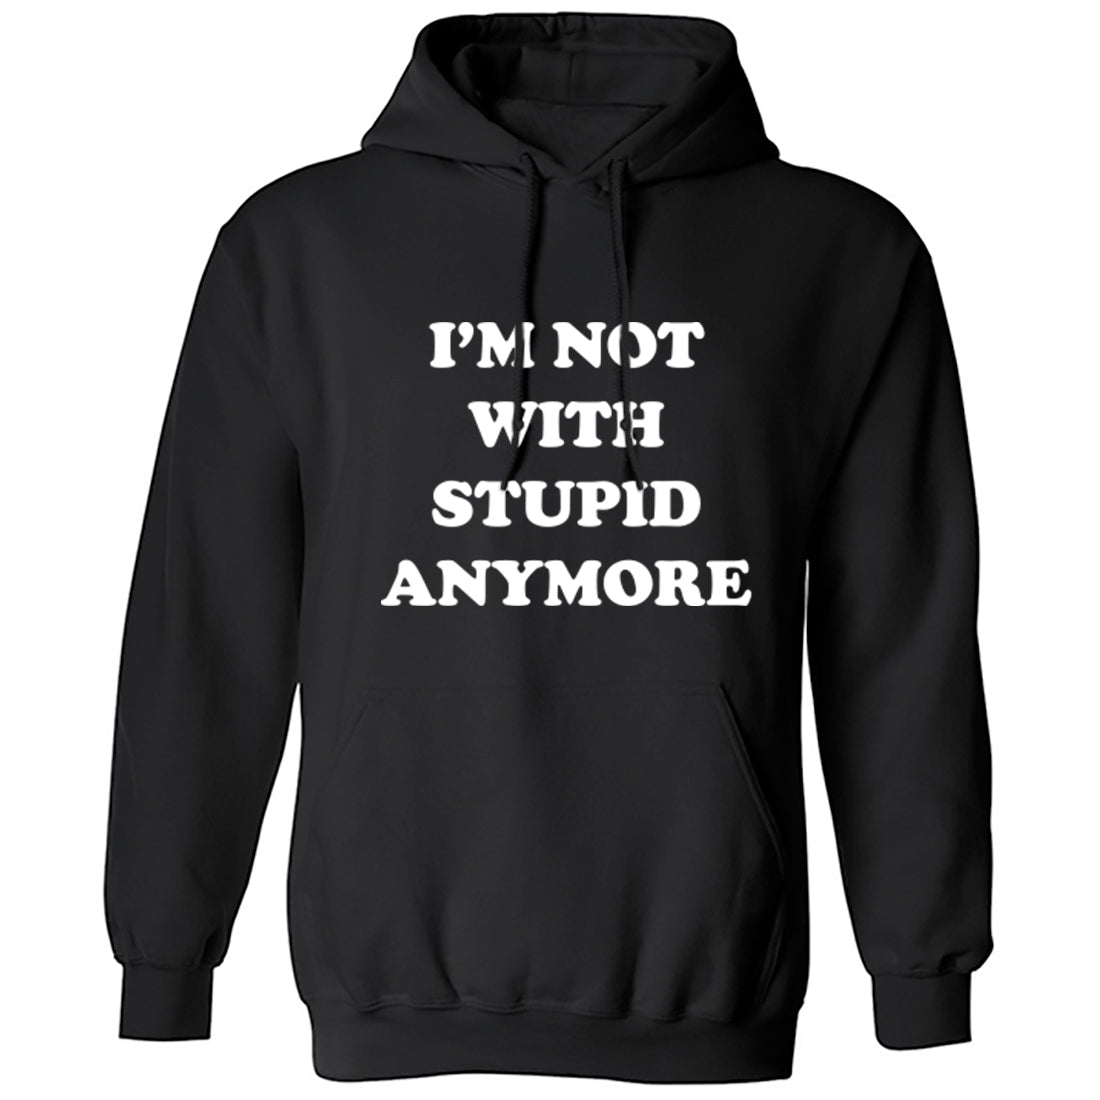 I'm Not With Stupid Anymore Unisex Hoodie K0983 - Illustrated Identity Ltd.